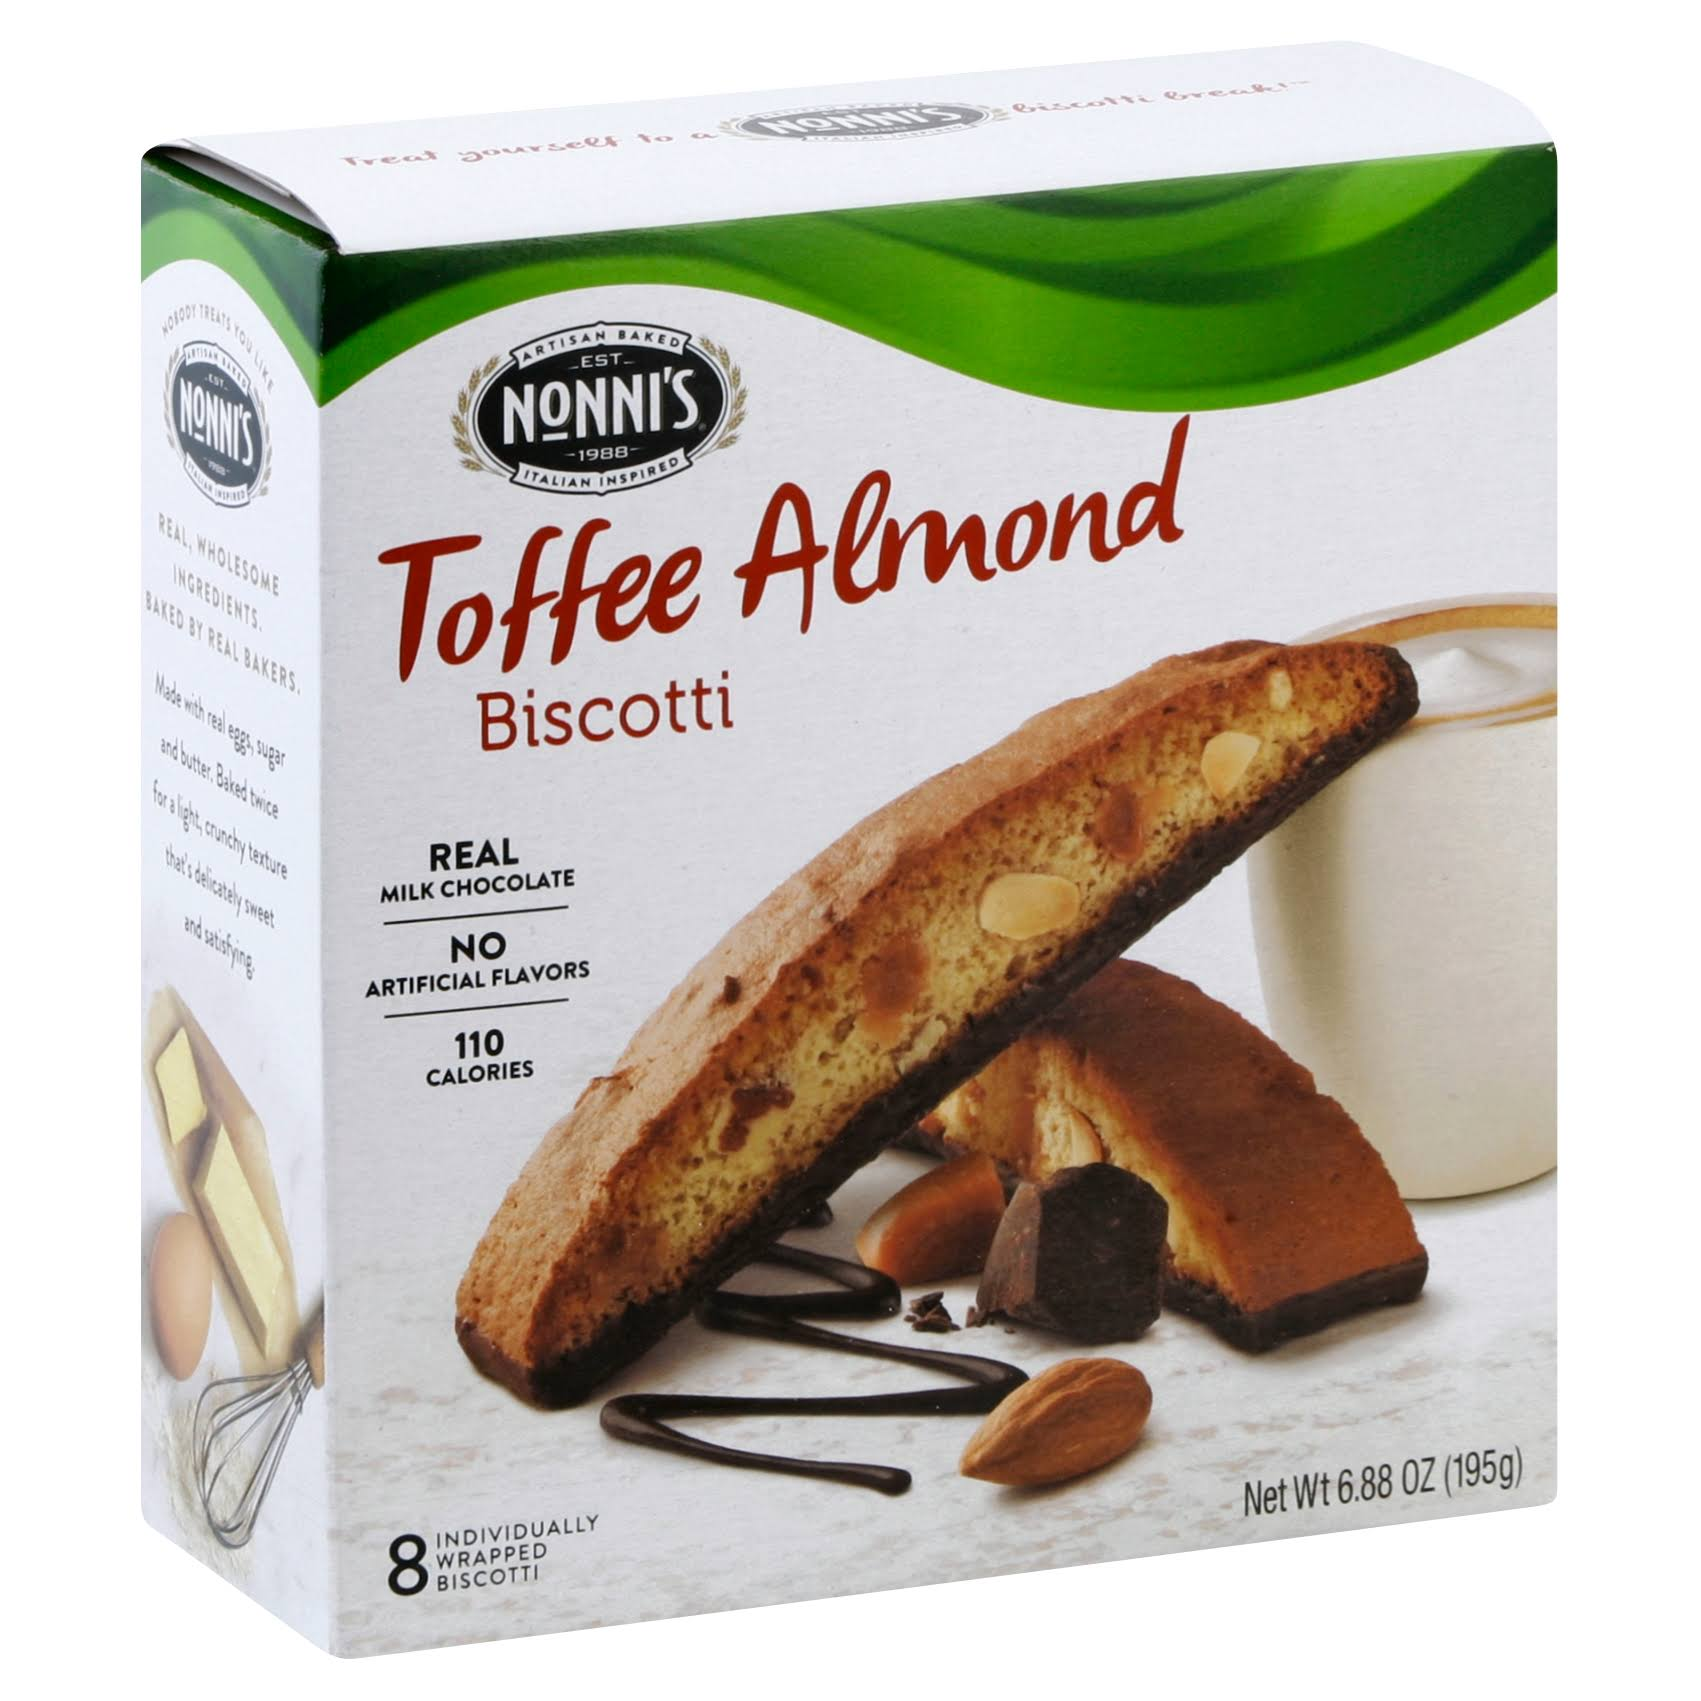 Nonnis Biscotti - Toffee Almond, 8 Ct, 6.88oz, Pack of 6